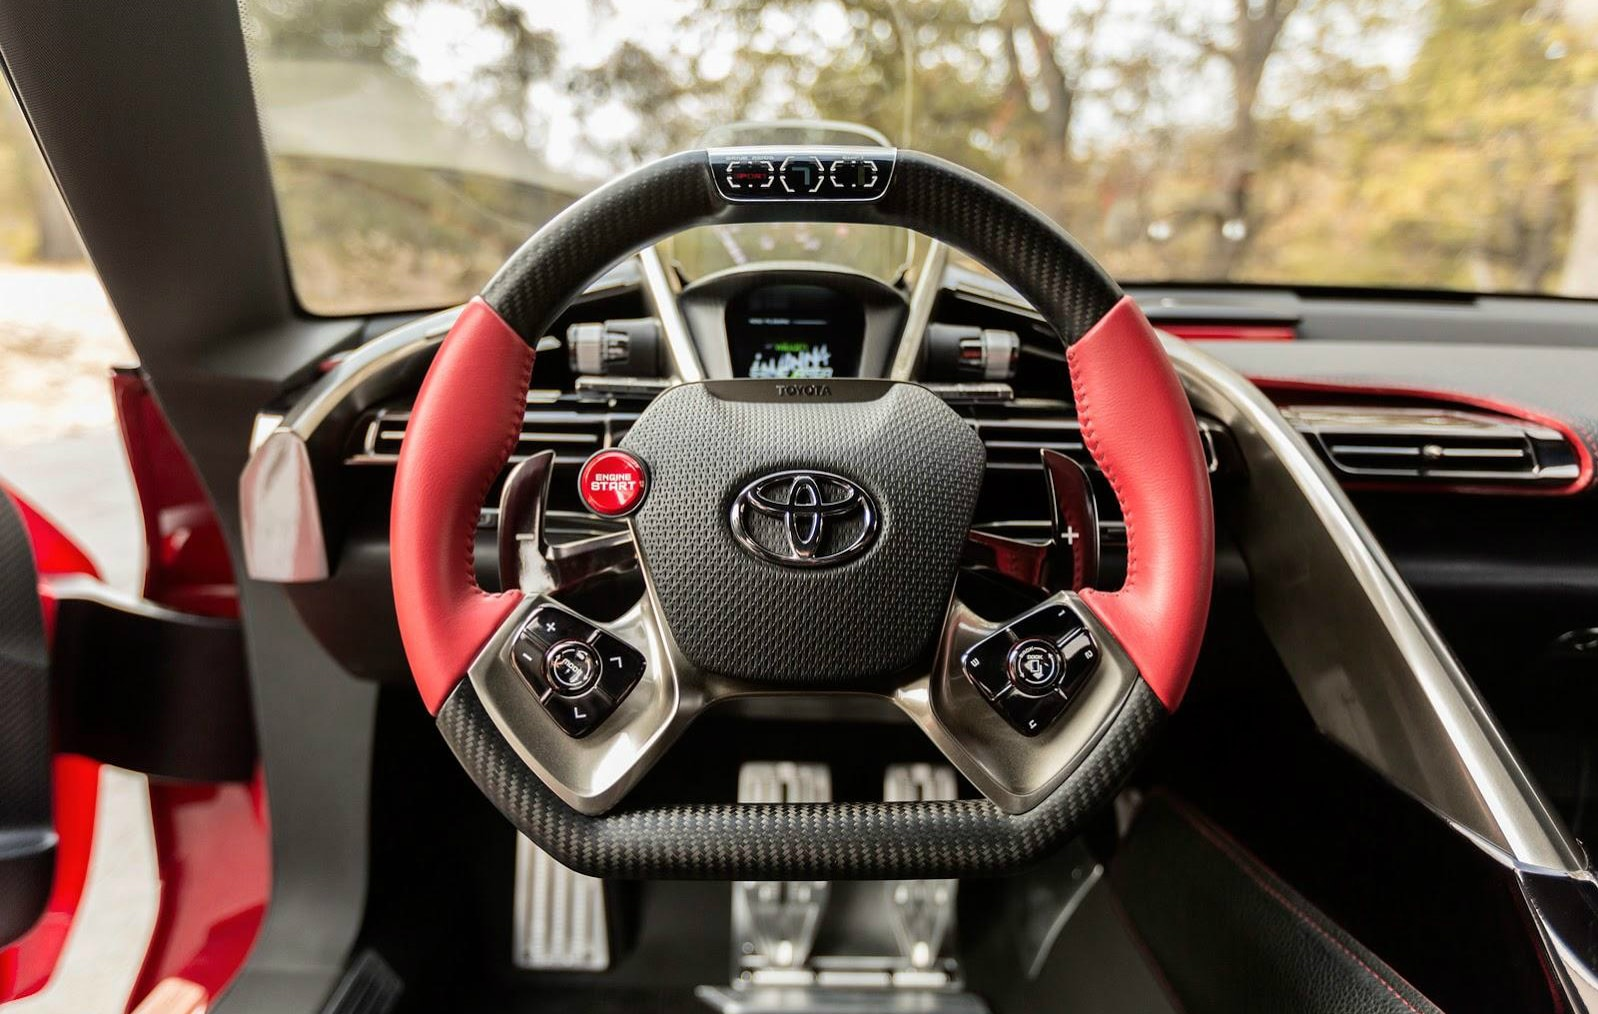 Toyota FT Steering Wheel front view